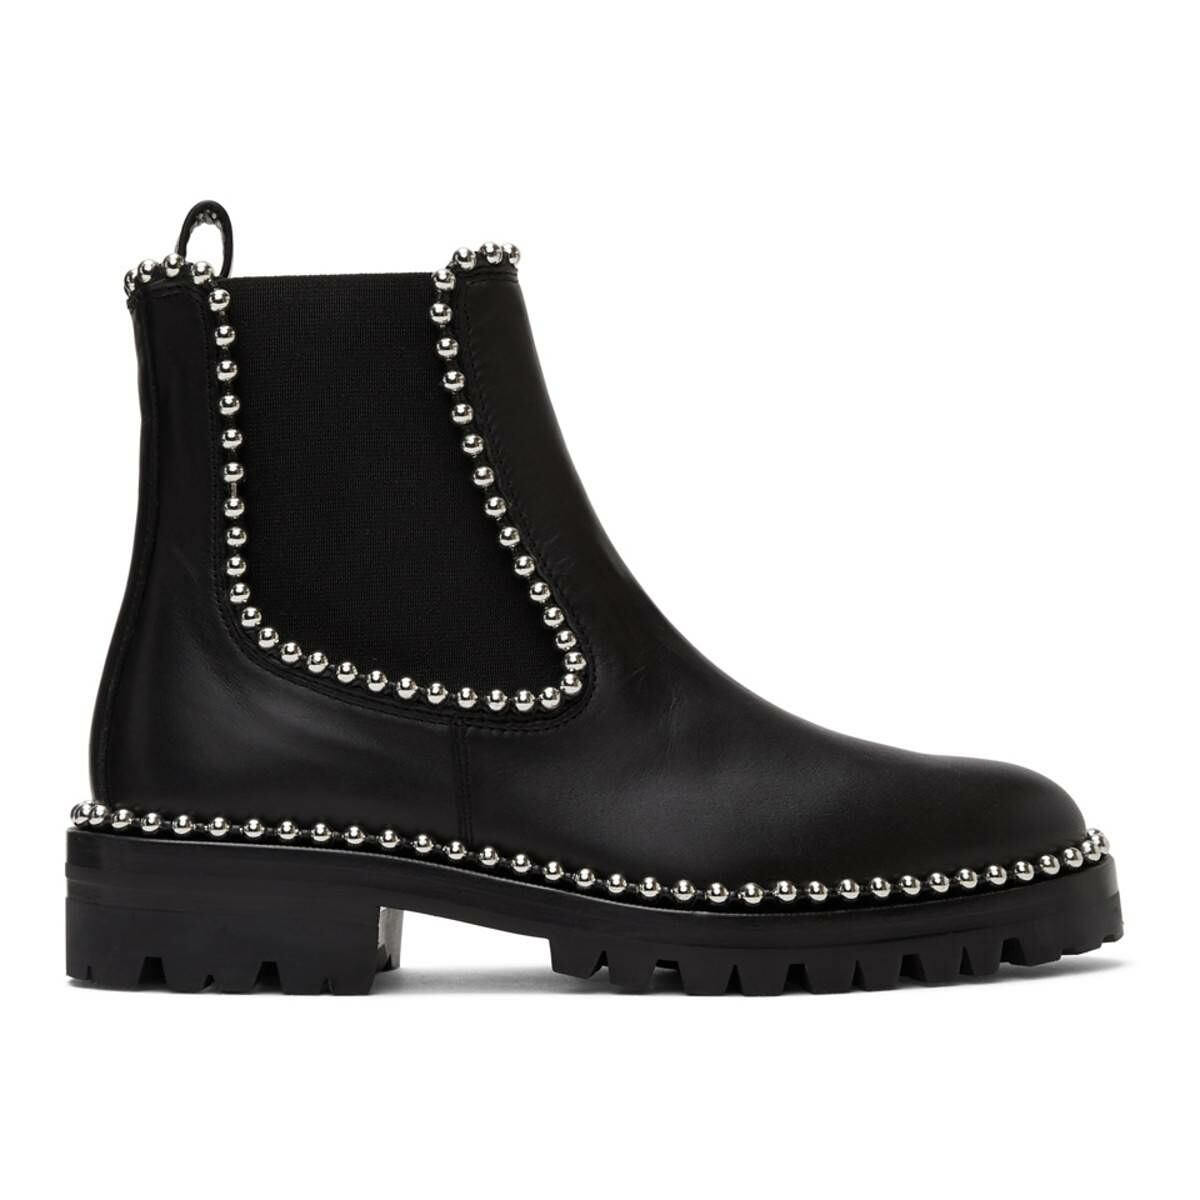 Alexander Wang Black Leather Spencer Boots Ssense USA WOMEN Women SHOES Womens ANKLE BOOTS